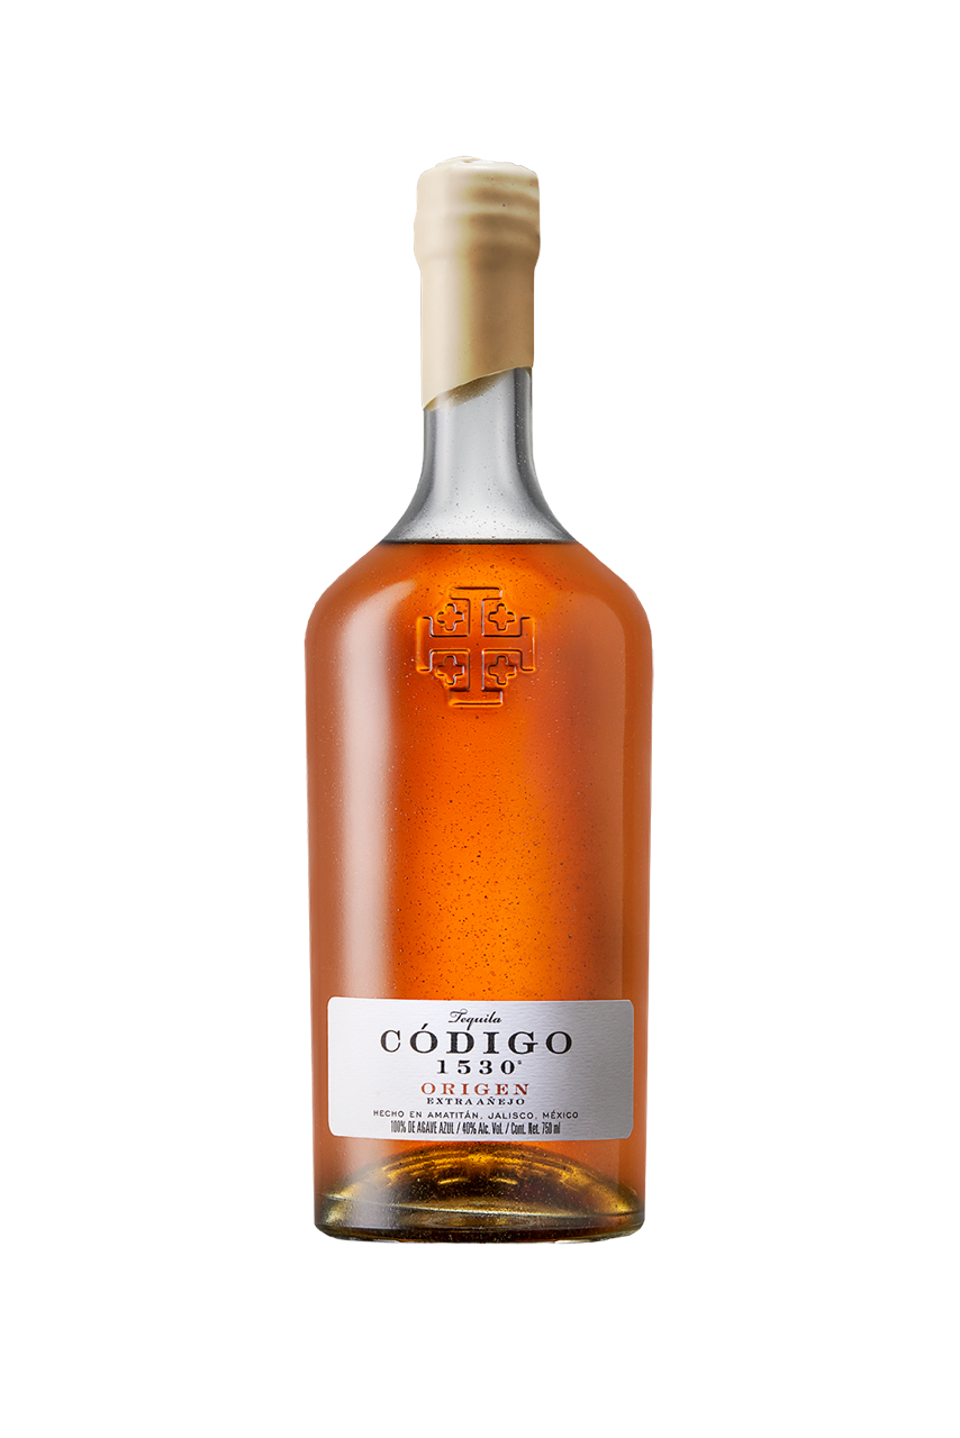 Codigo 1530 has a long-standing reputation, seeing as it's one of the longest existing on the market.